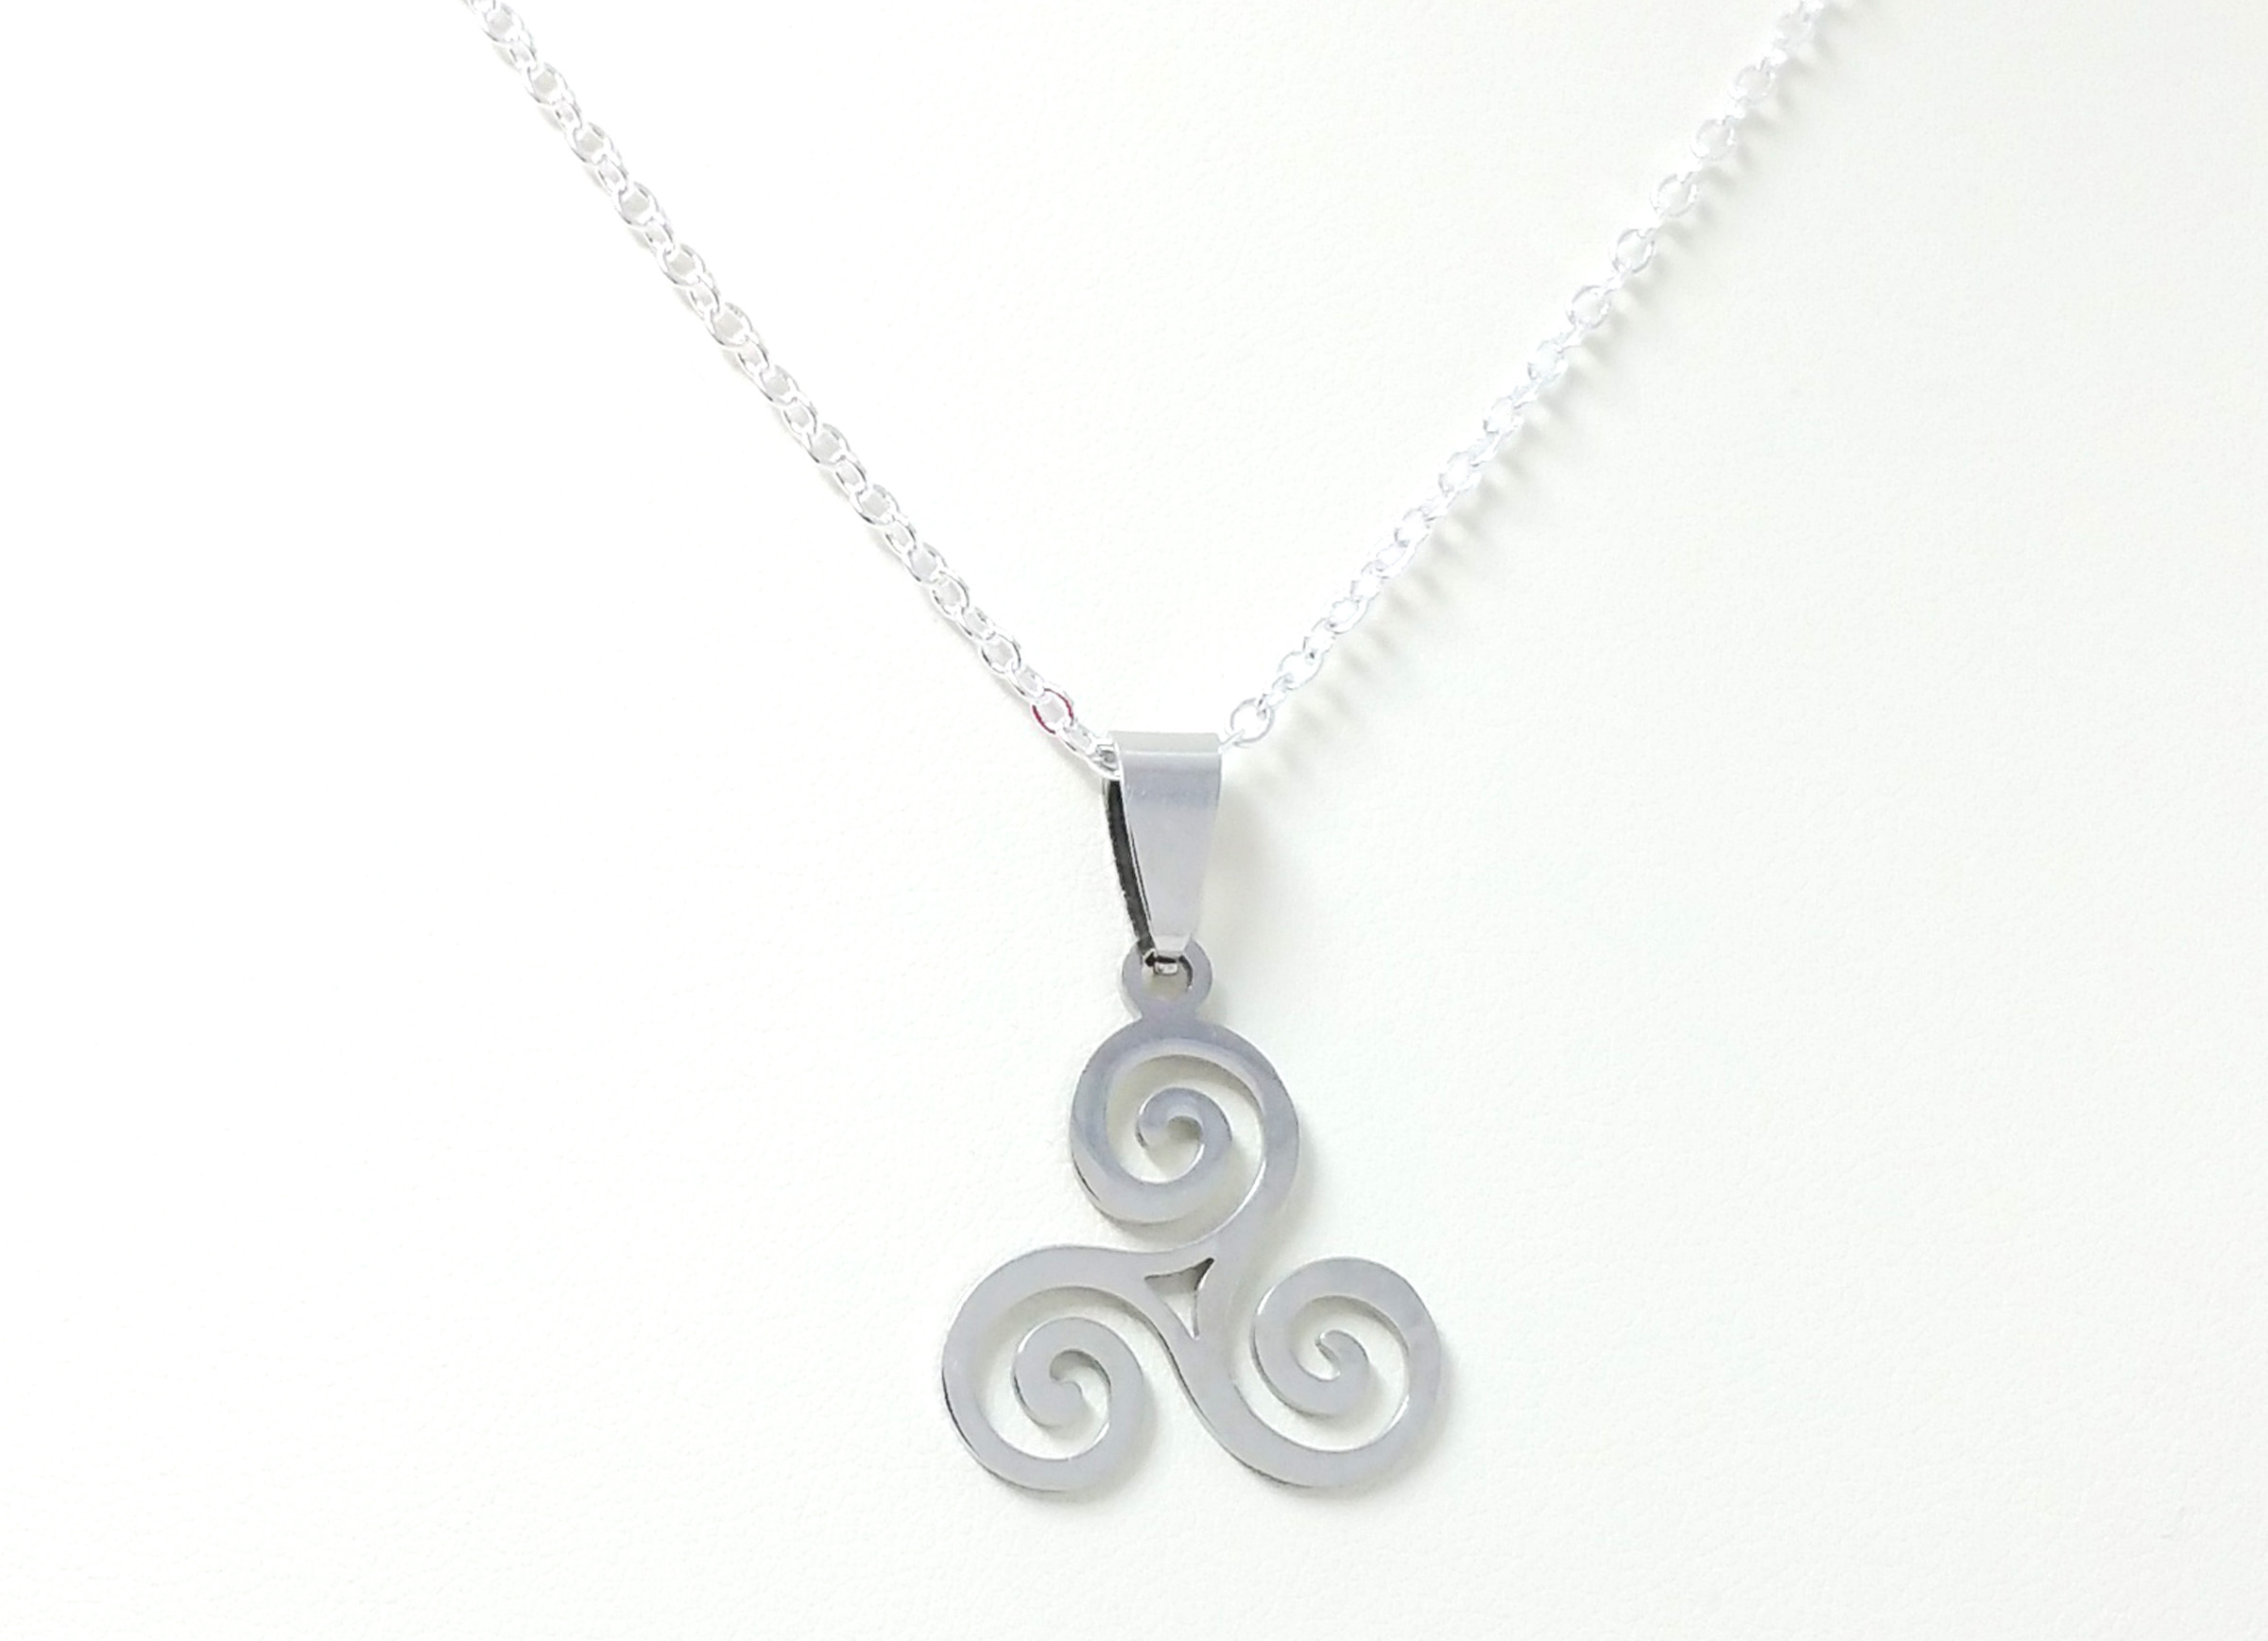 trinity product silver triskele watches on com necklace overstock pendant box chain shipping jewelry celtic inch today sterling free